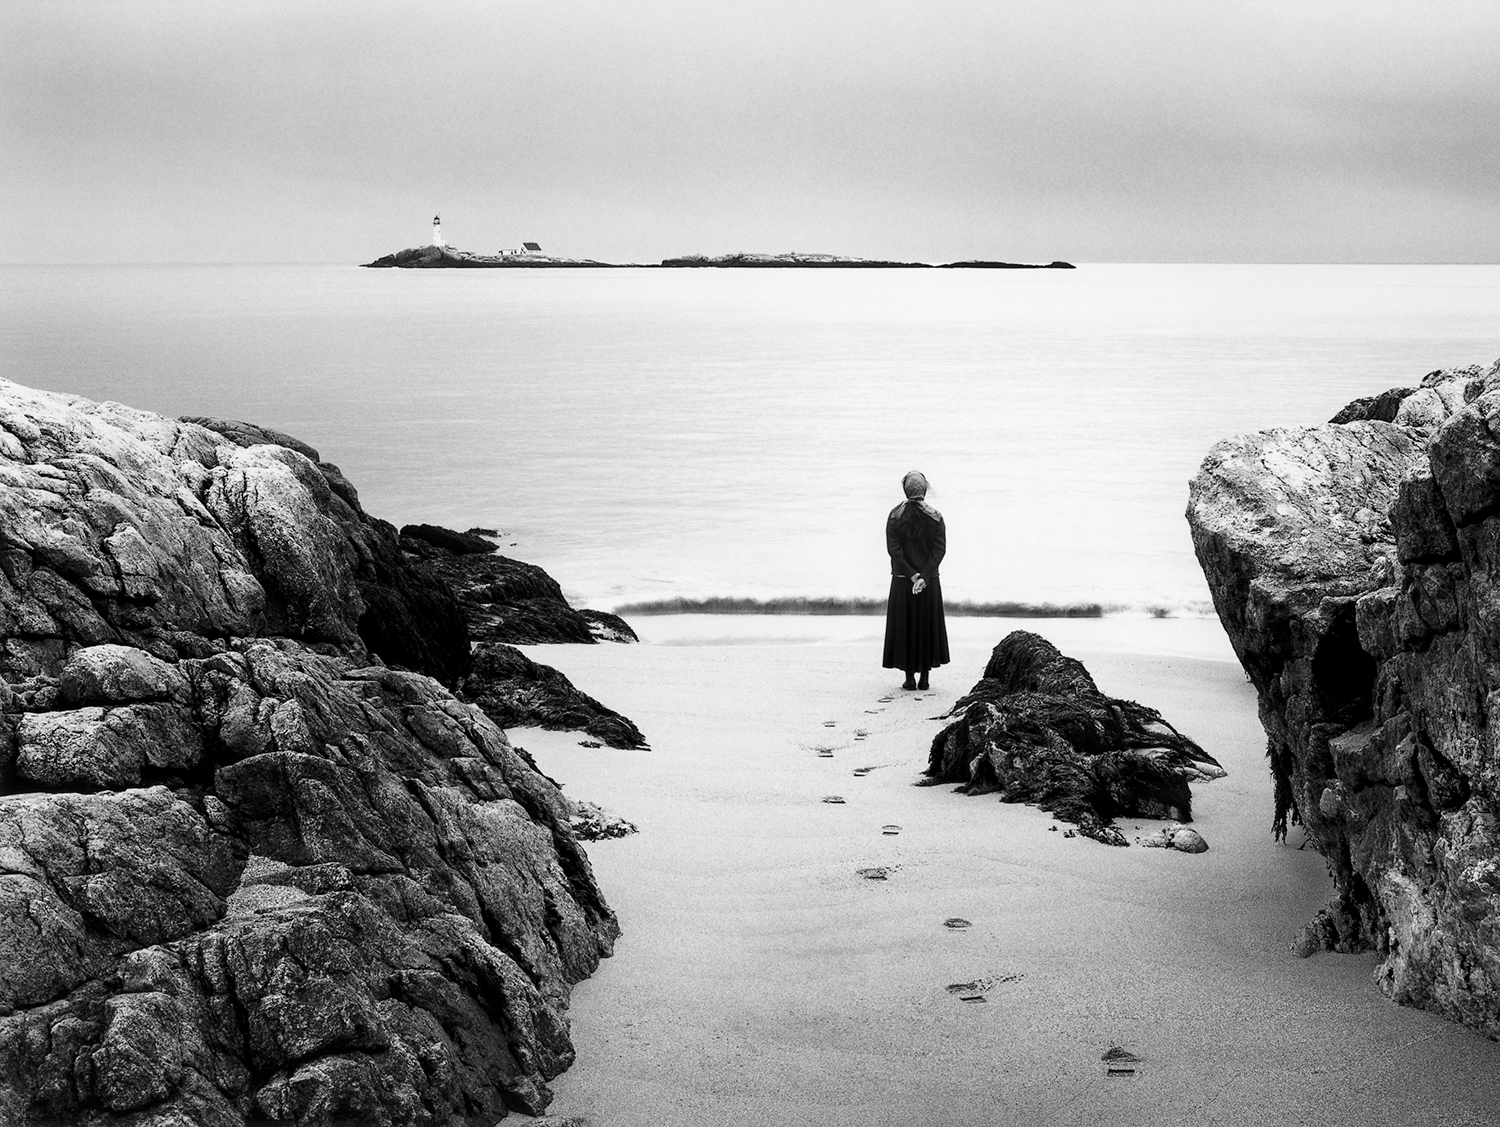 Looking Seaward, Self-portrait + Small Island, Big Picture  monograph  Alexandra de Steiguer  6 x 9, signed and numbered silver gelatin print Hardcover, 128-page, signed monograph